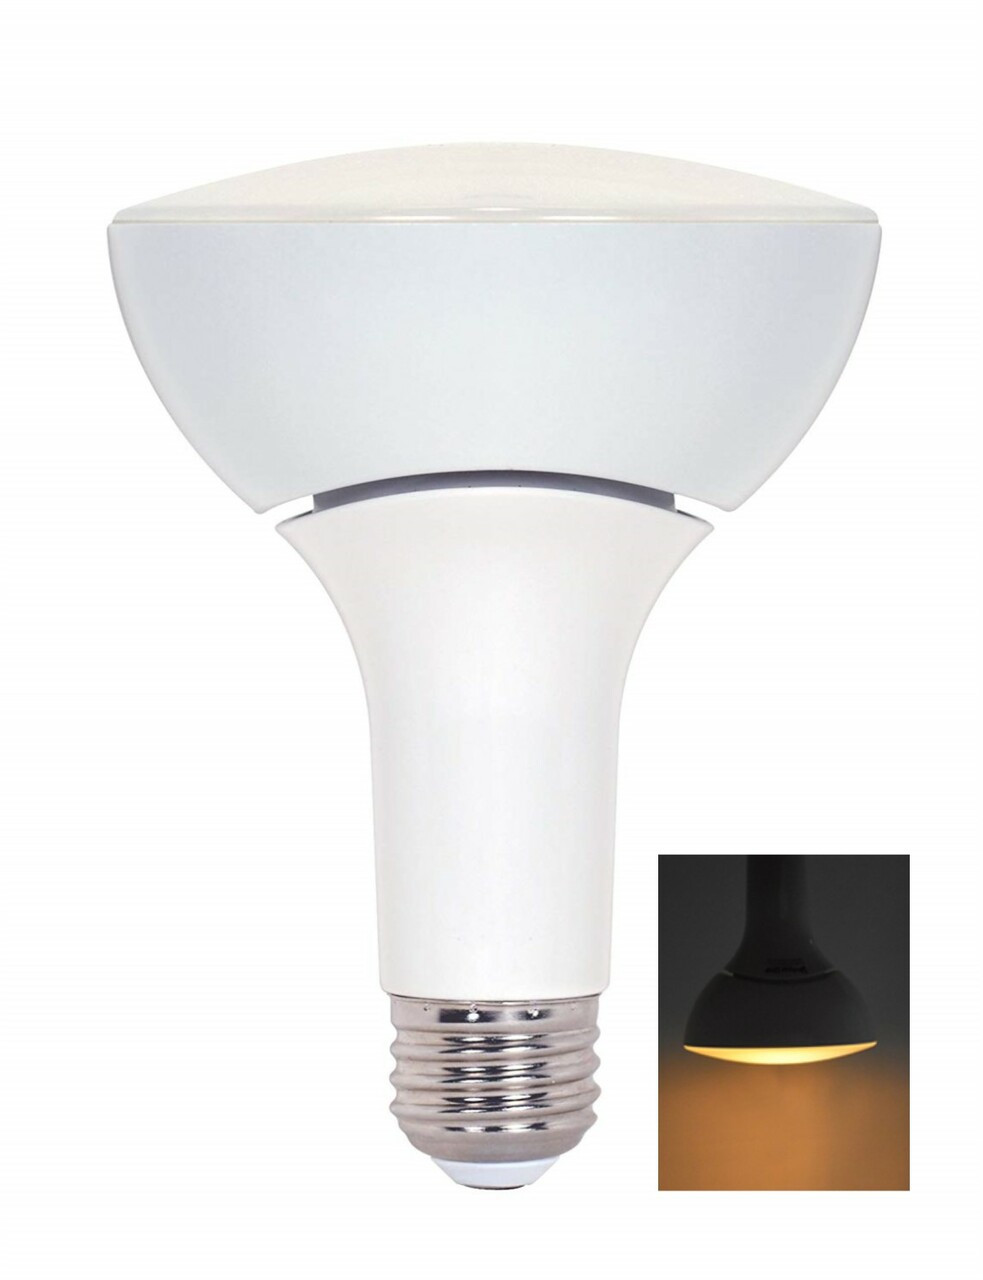 Led 12 Watt Dimmable 60w Replacement Br30 Light